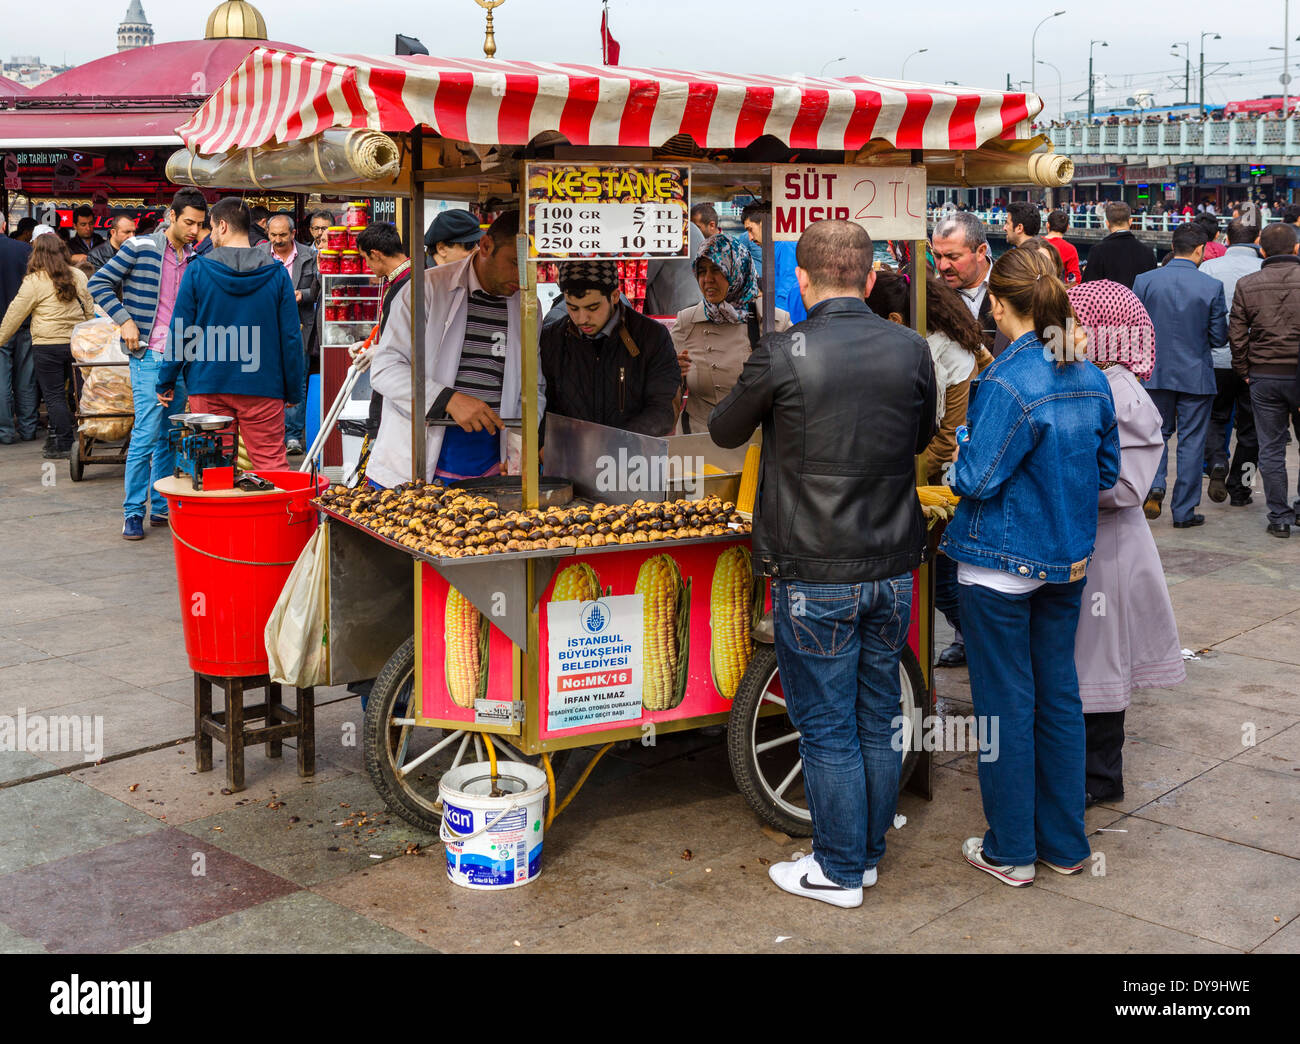 Street vendor selling corn on the cob and roasted chestnuts near the Galata Bridge in the Eminonu district, Istanbul,Turkey - Stock Image